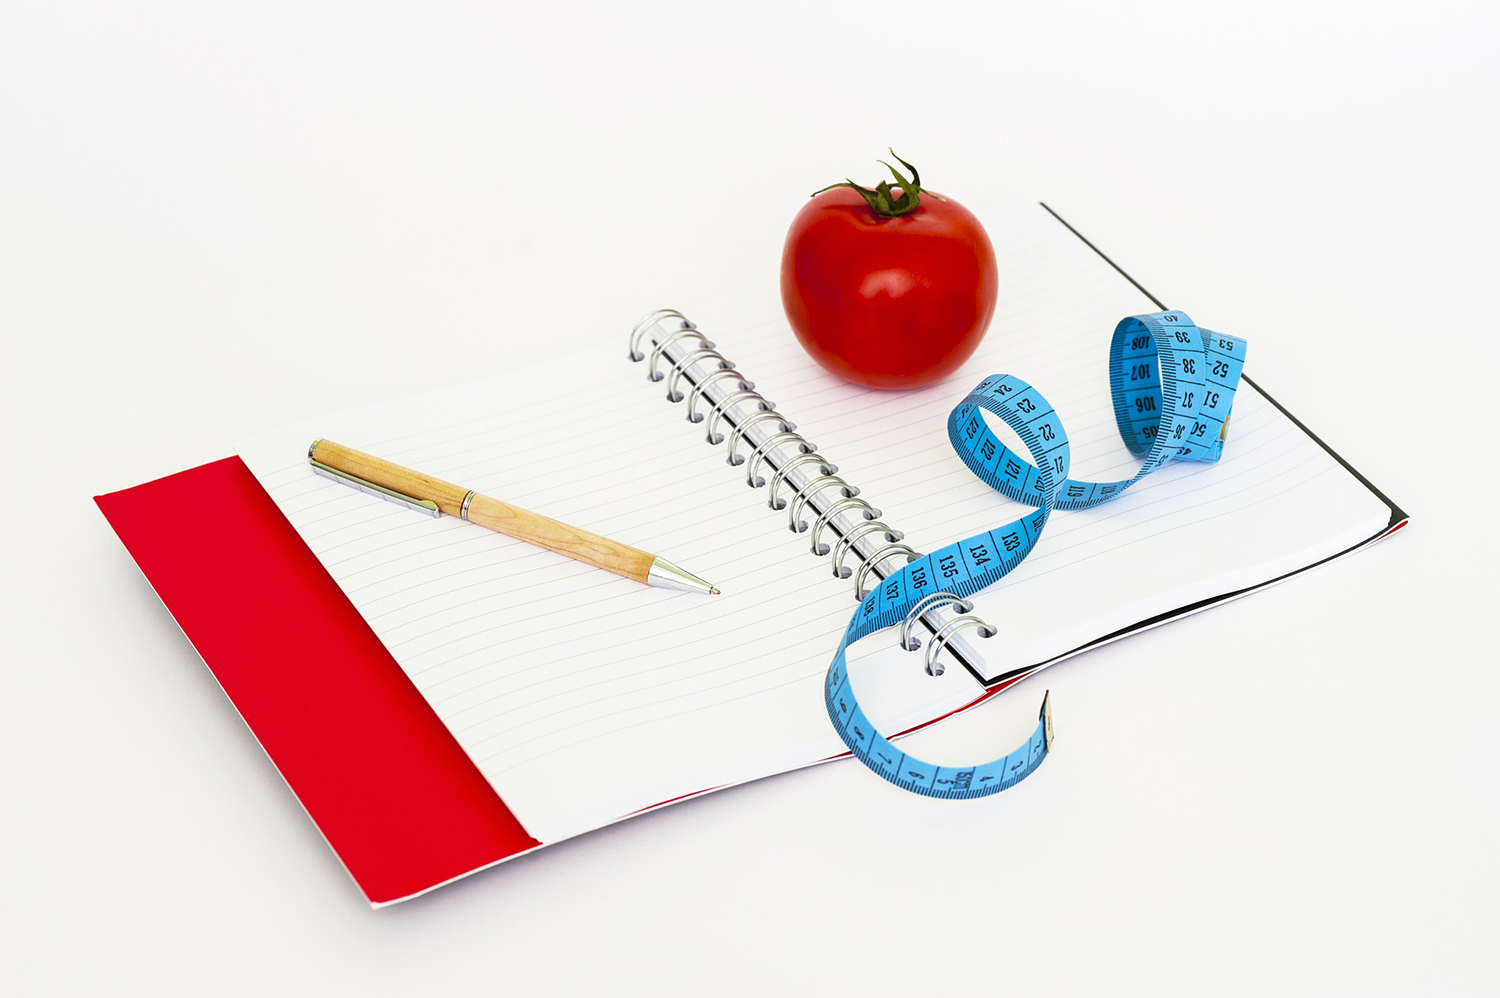 Weight Loss and Dieting Concept. Tape Measure, Tomato, Pen, and Paper